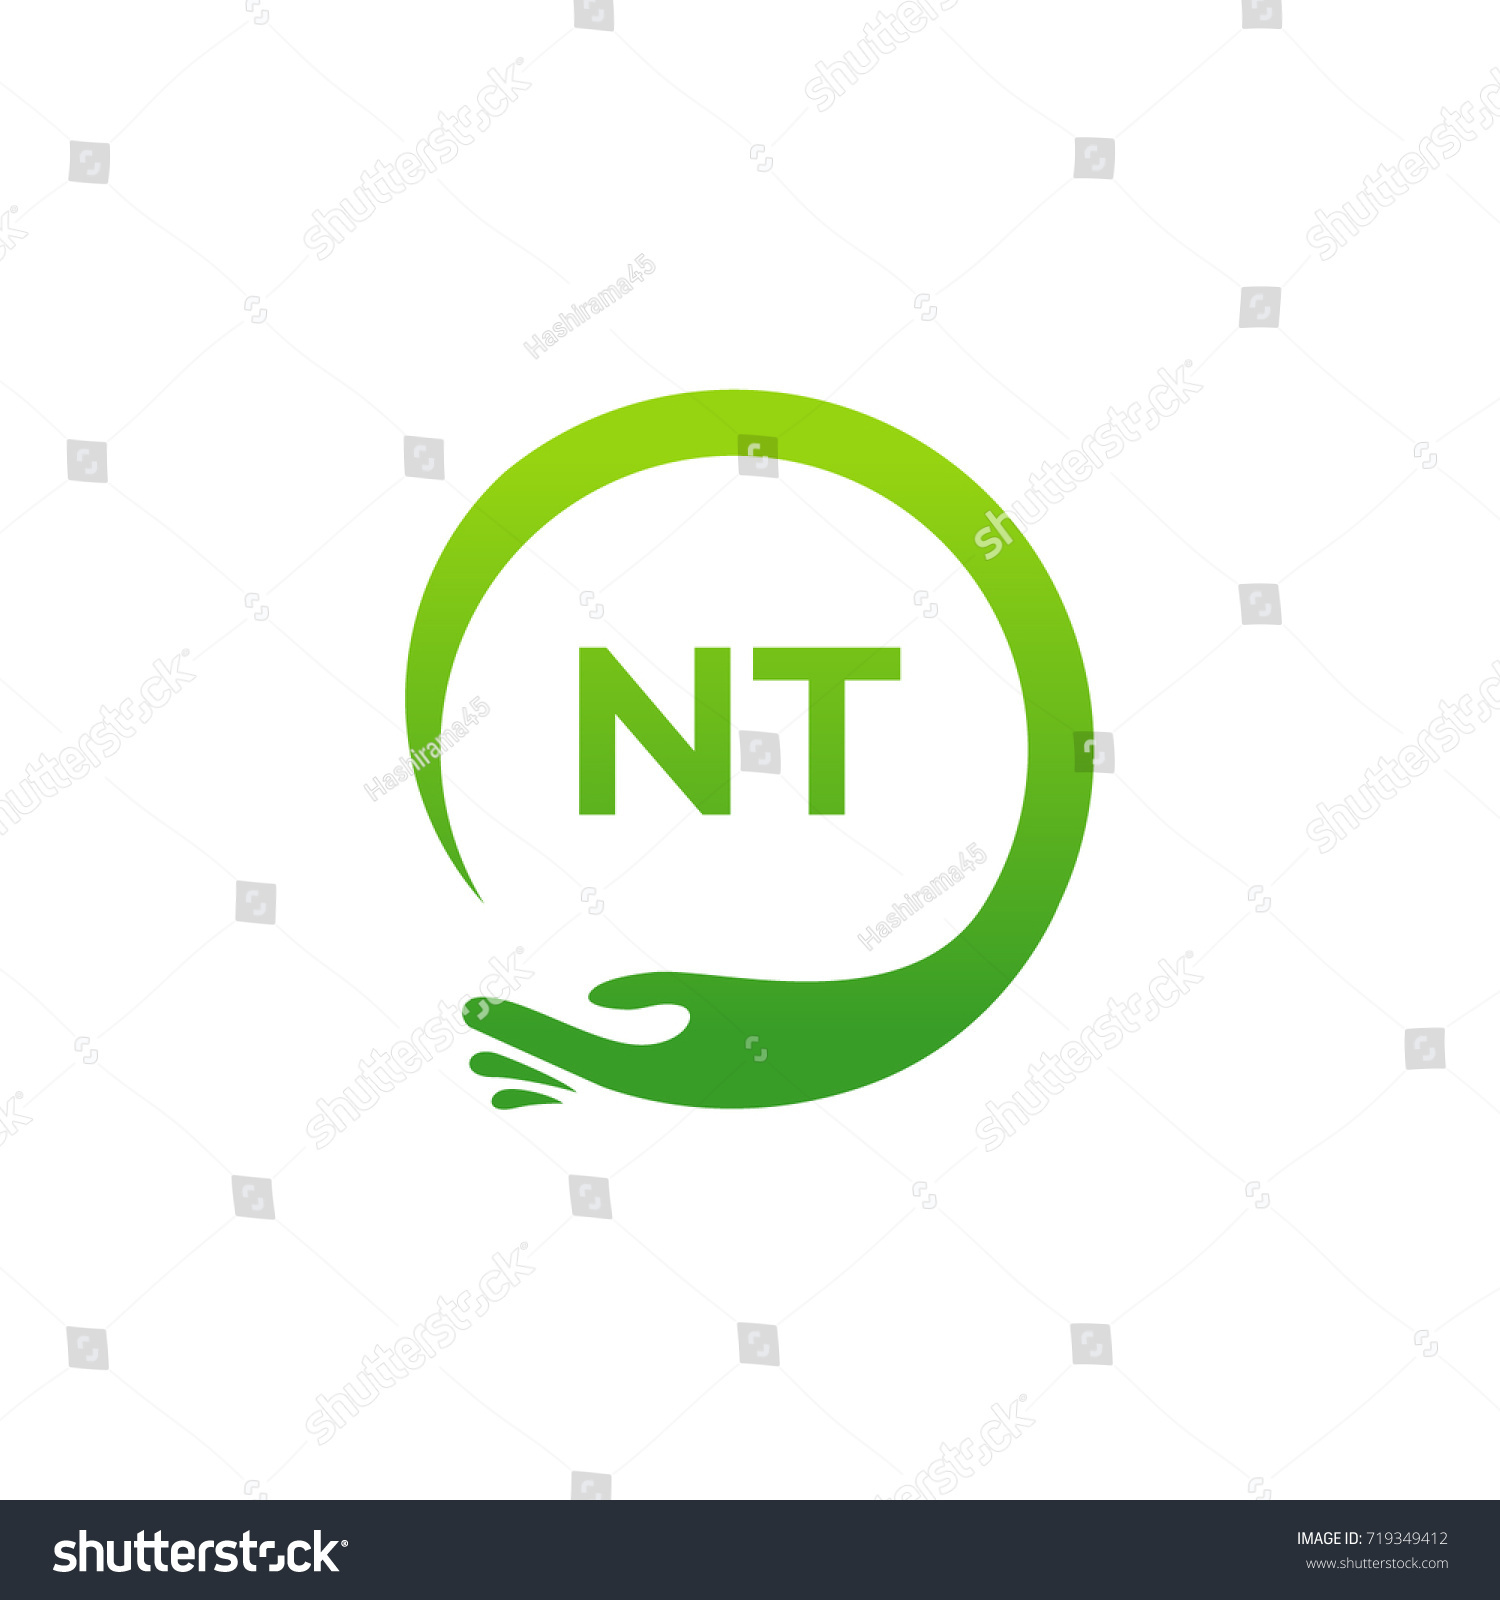 Nt Stock Symbol Image Collections Meaning Of Text Symbols